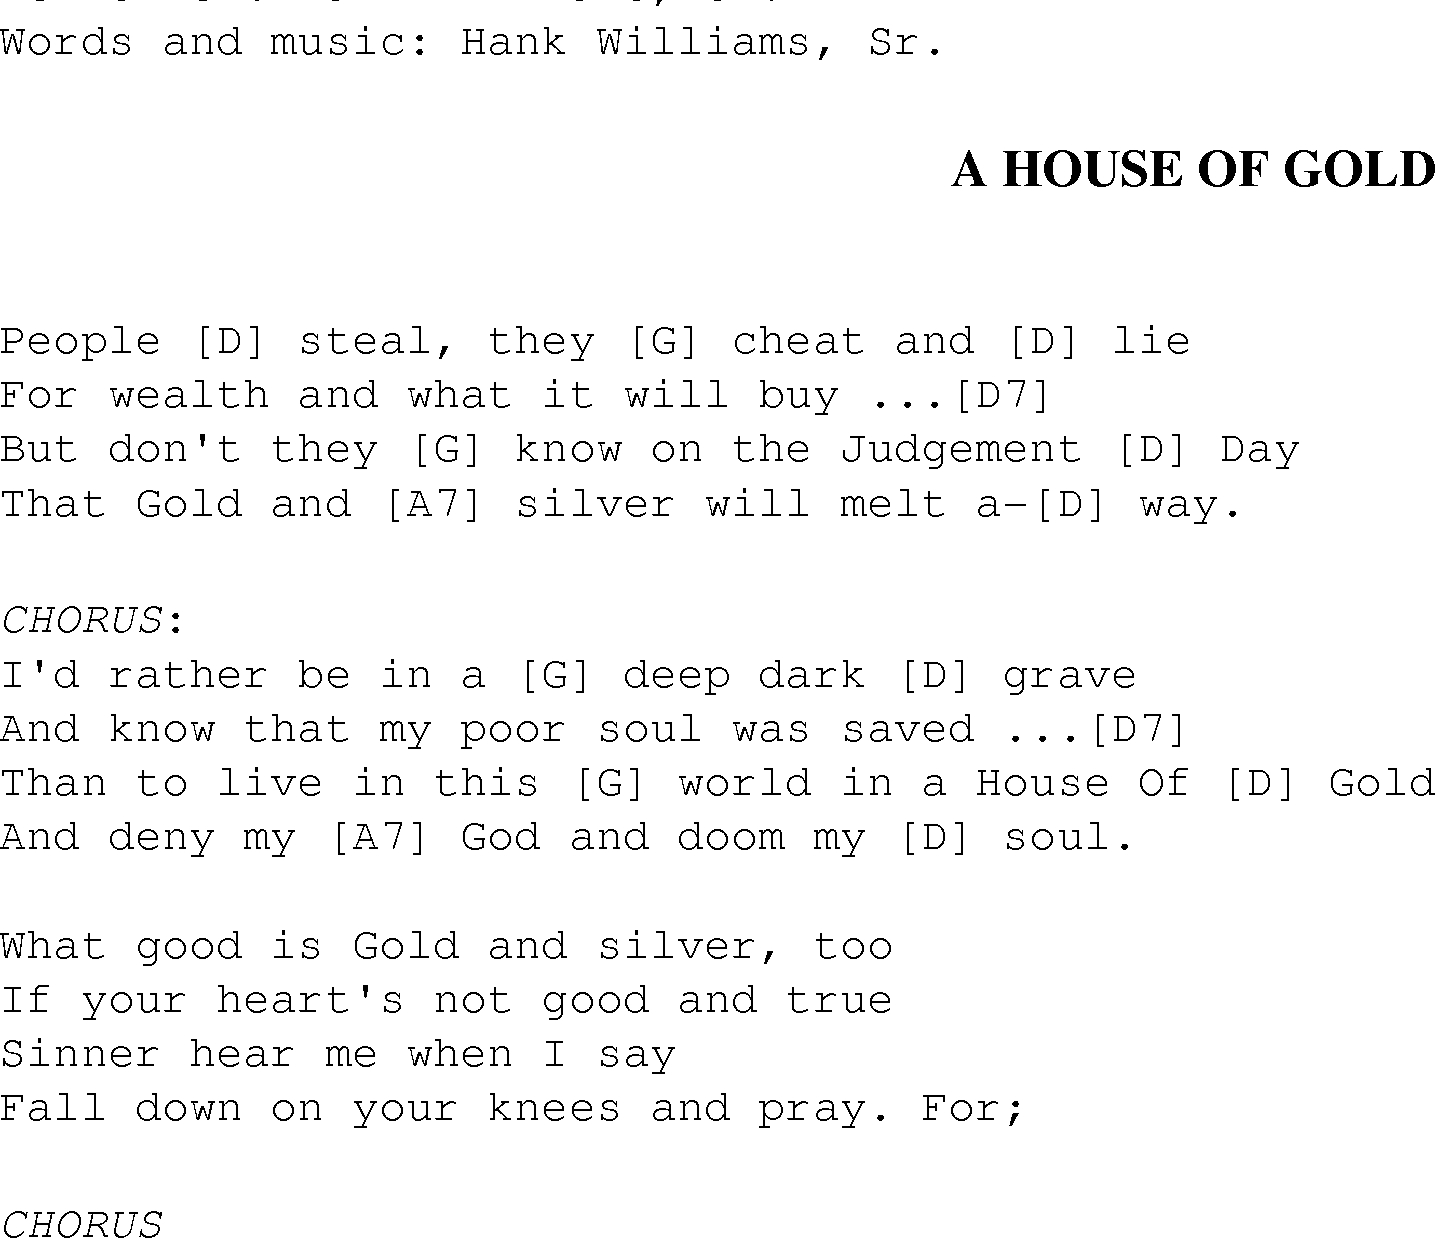 Heart Of Gold Chords A House Of Gold Christian Gospel Song Lyrics And Chords